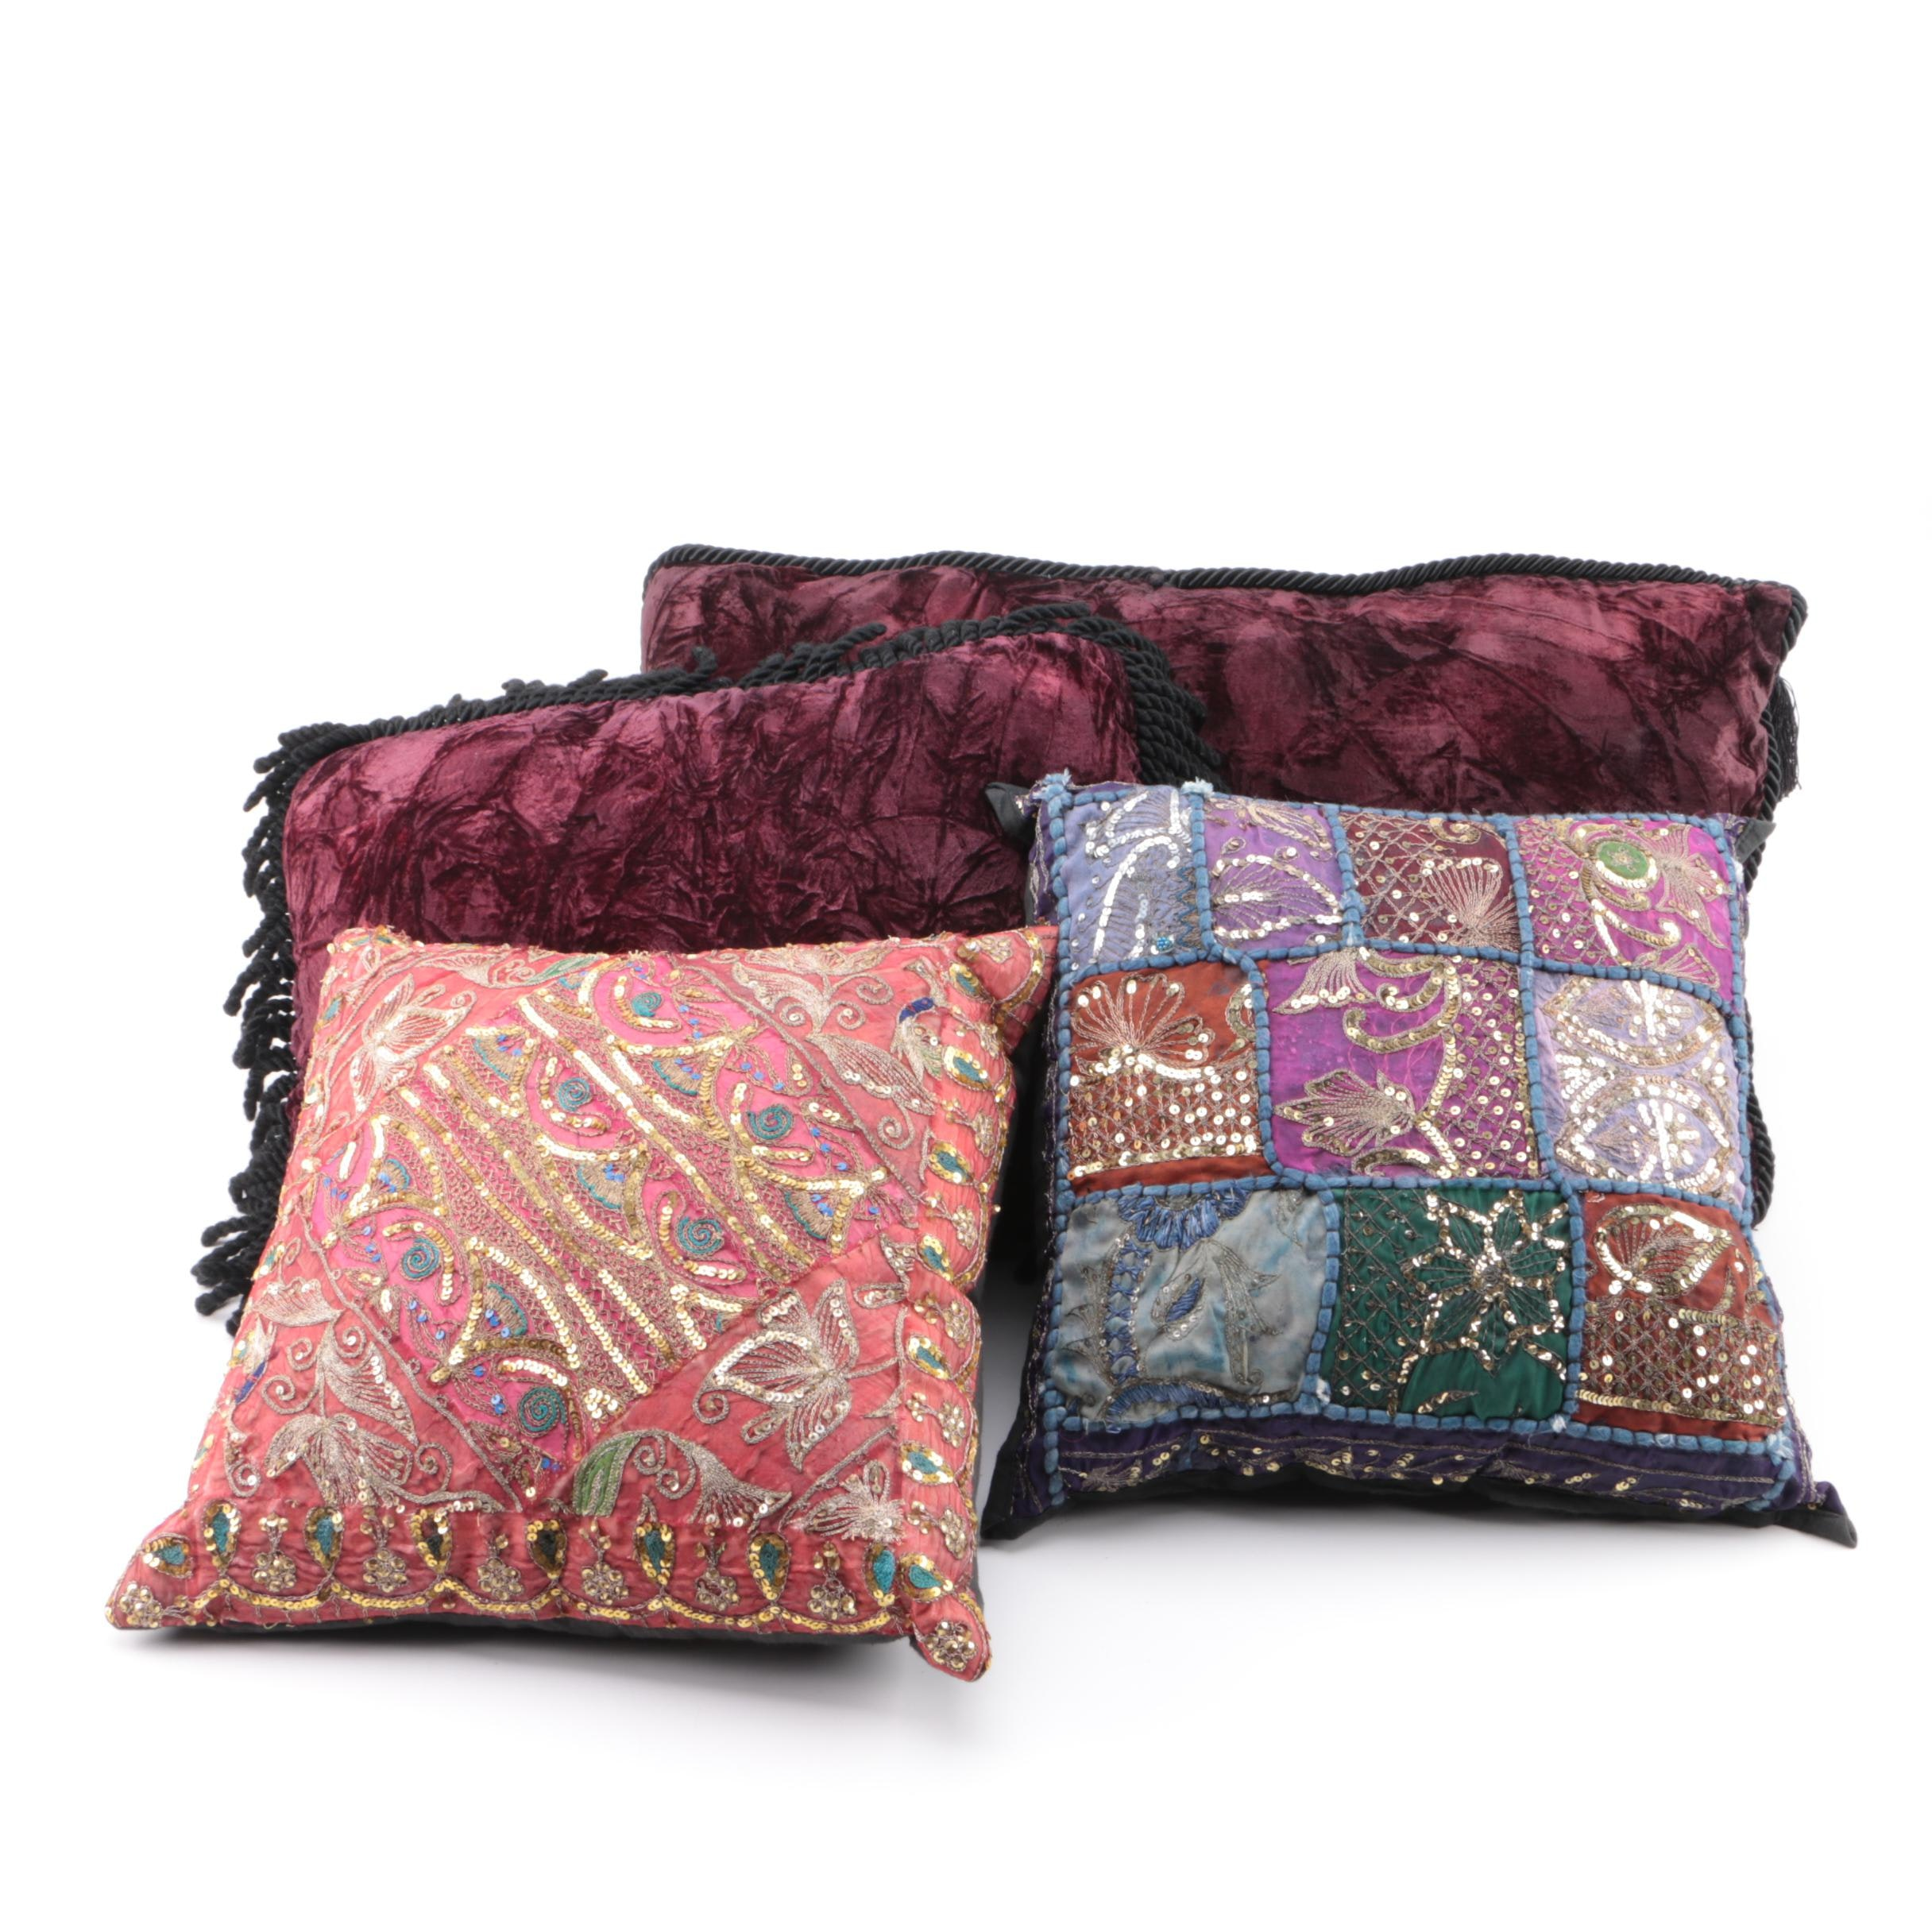 Bouclé and Sequin Embellished Decorative Accent Pillows